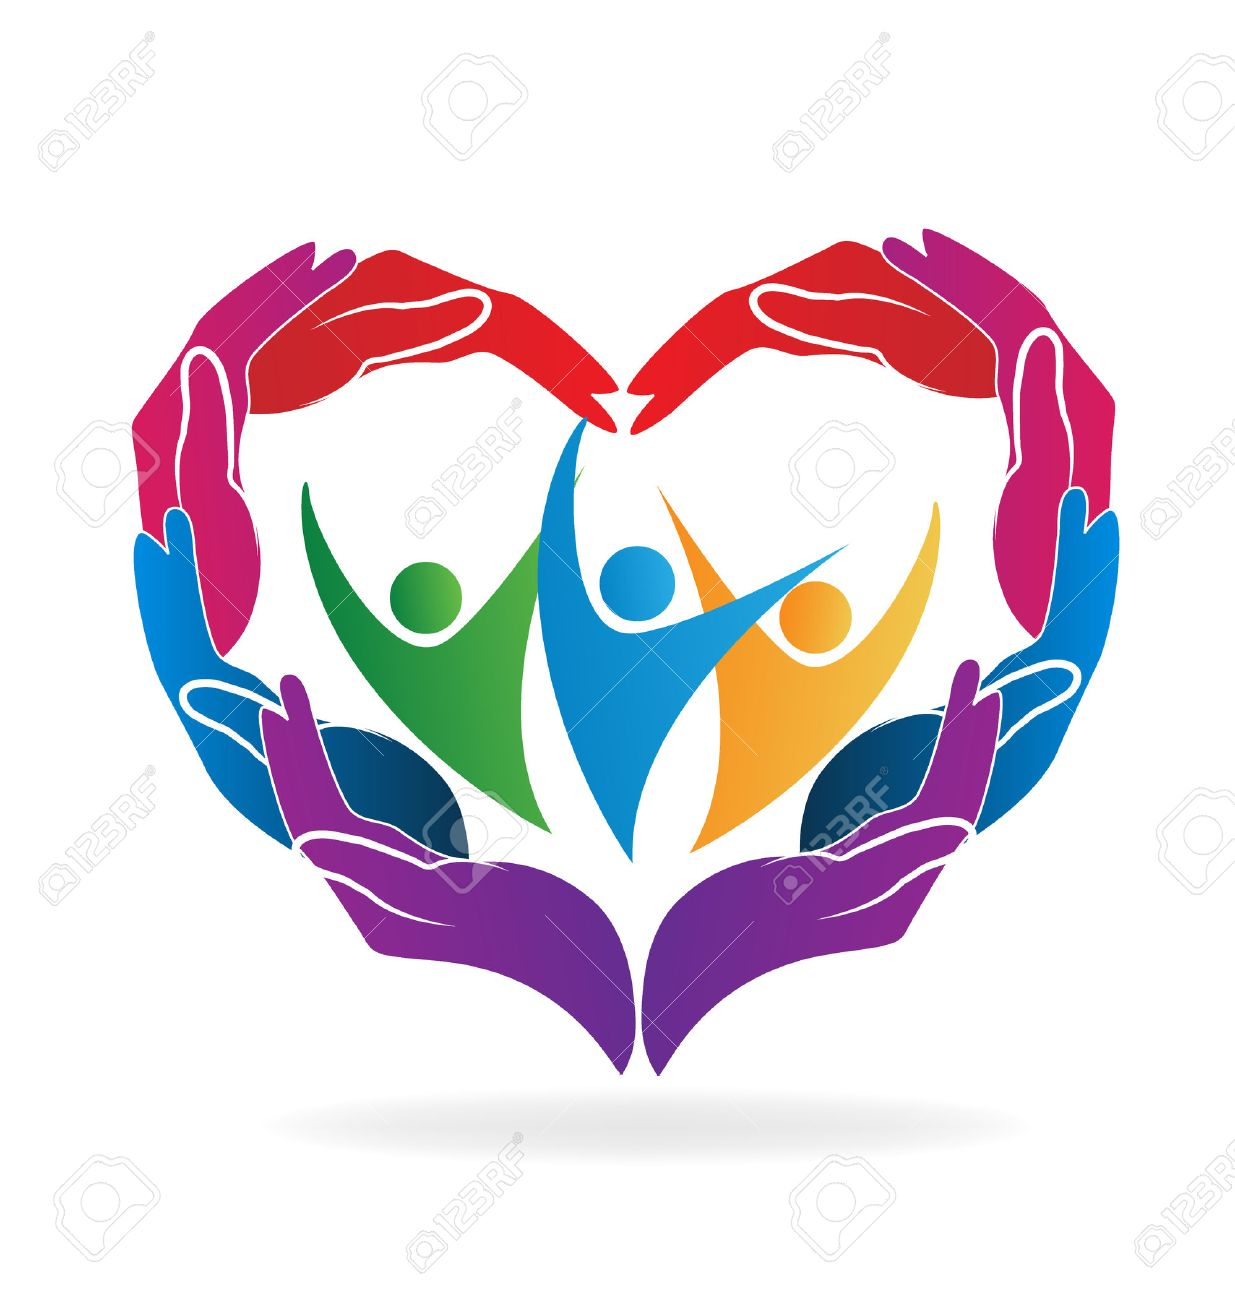 Hands heart love caring people vector image - 60639314